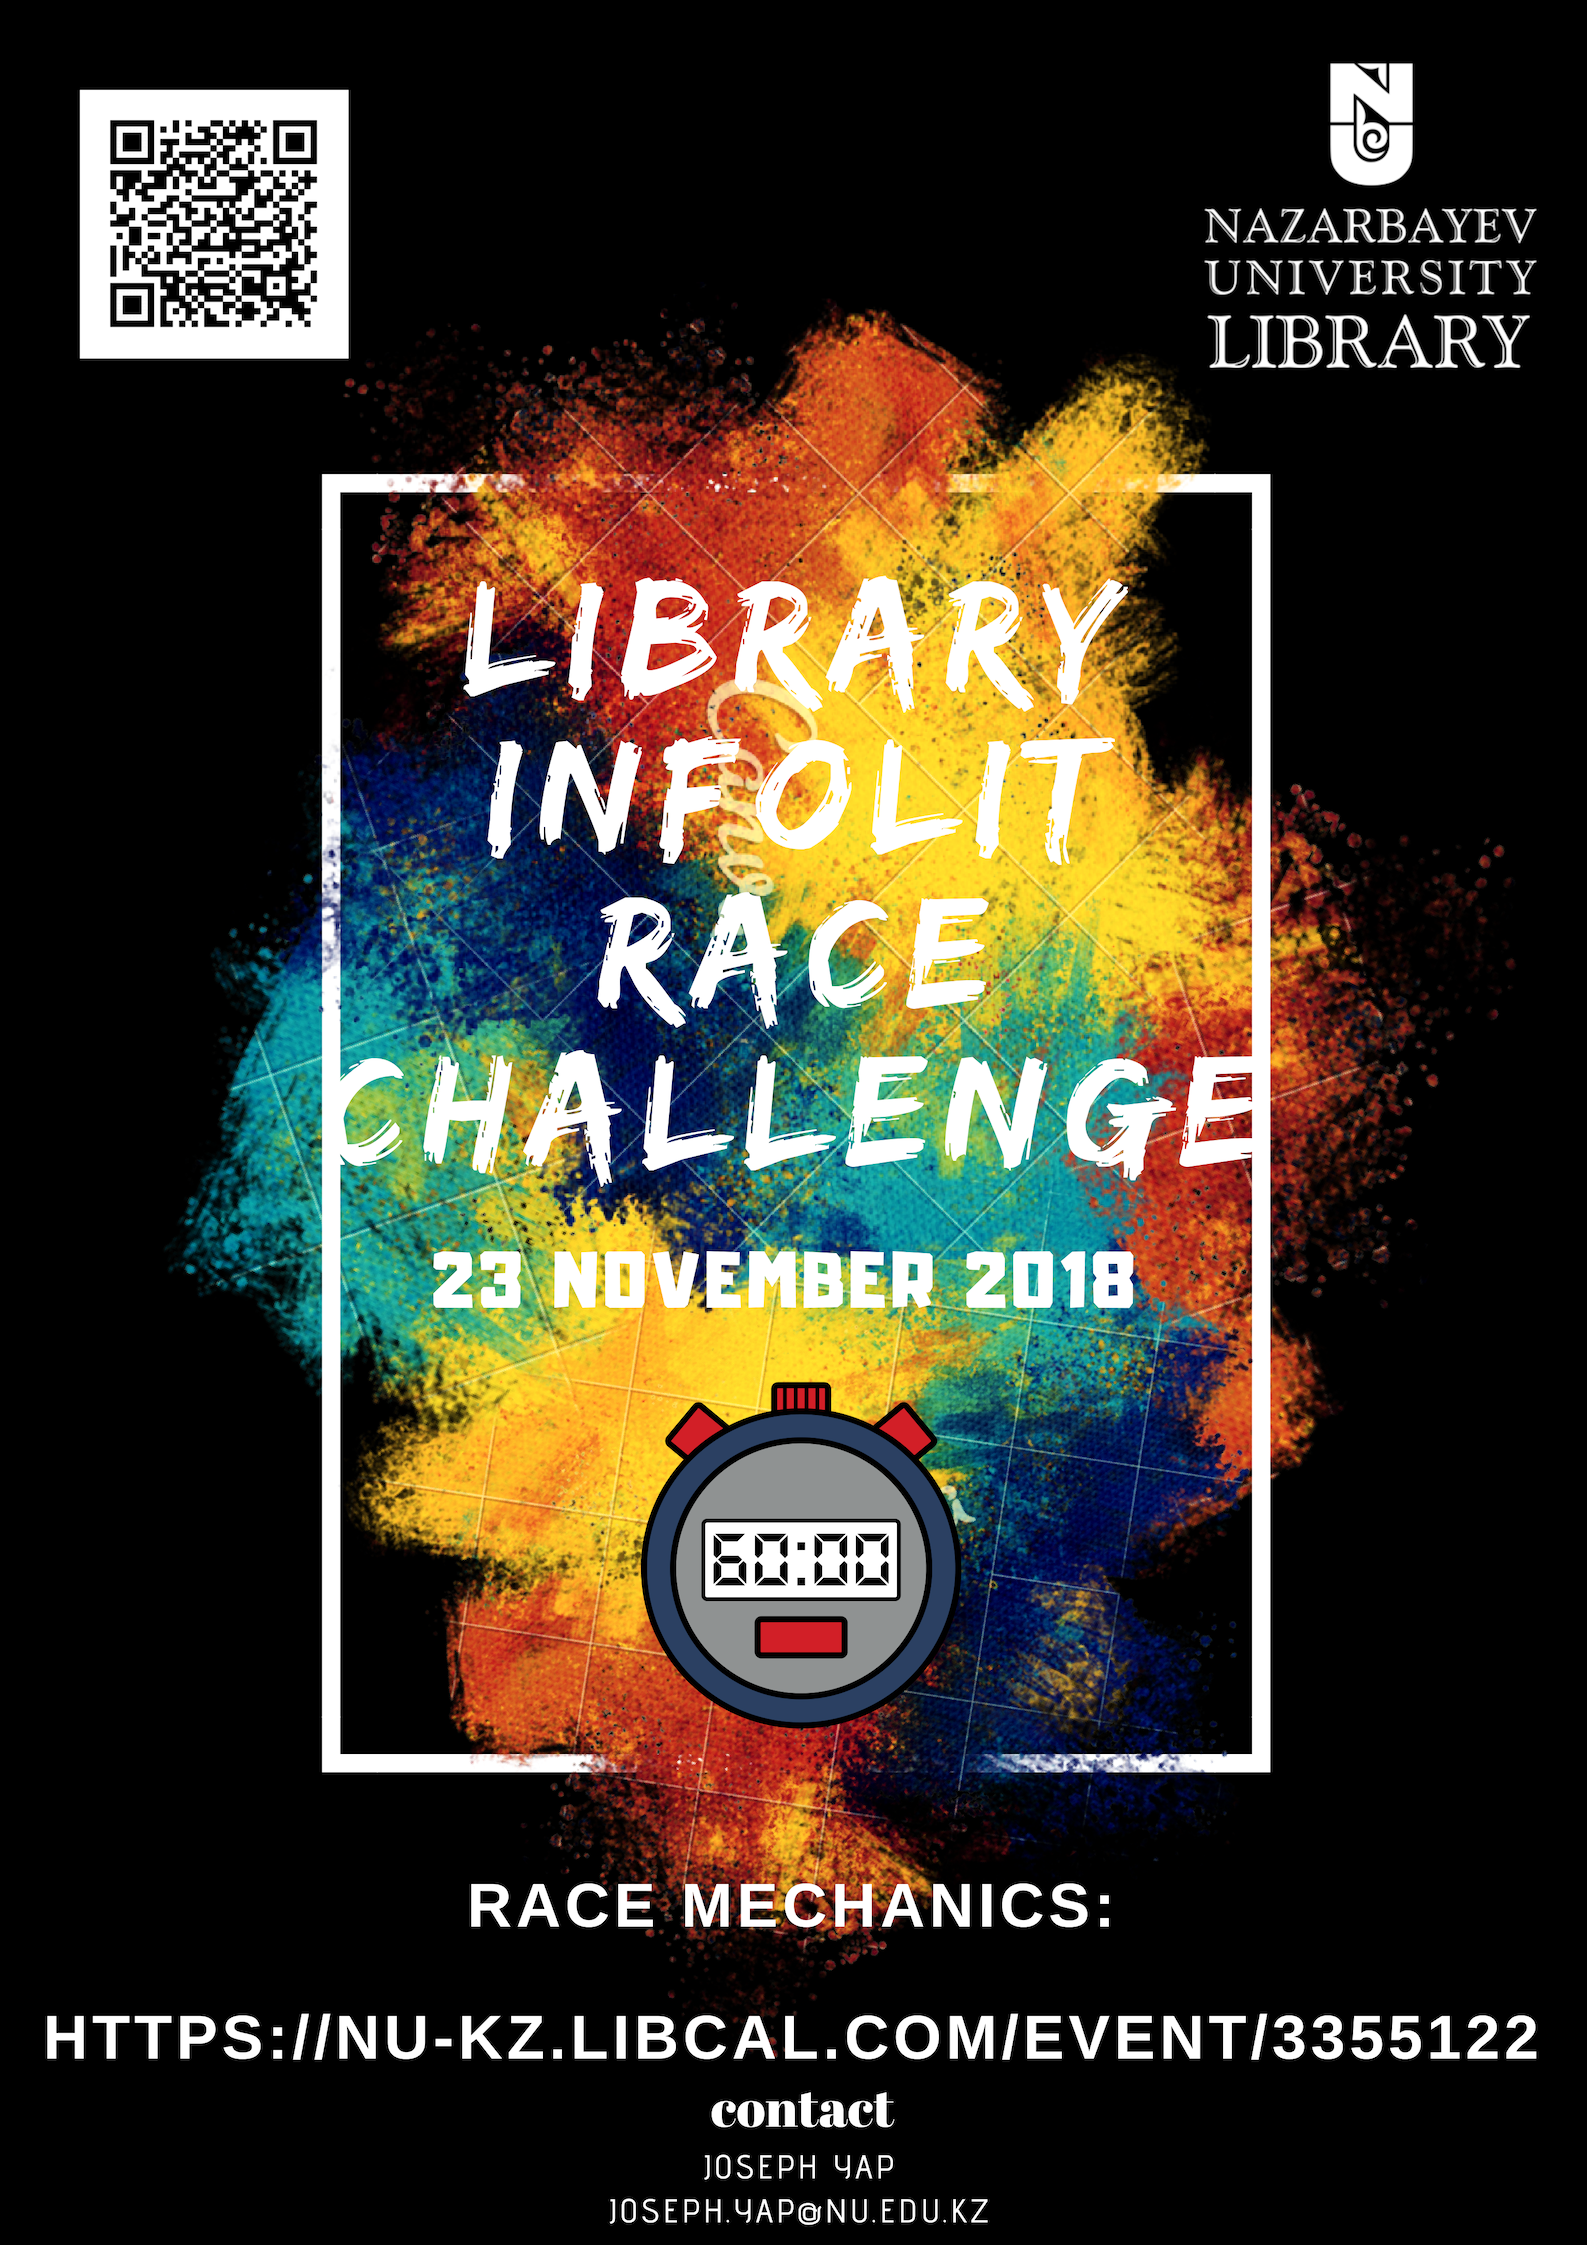 Library InfoLit Race Challenge